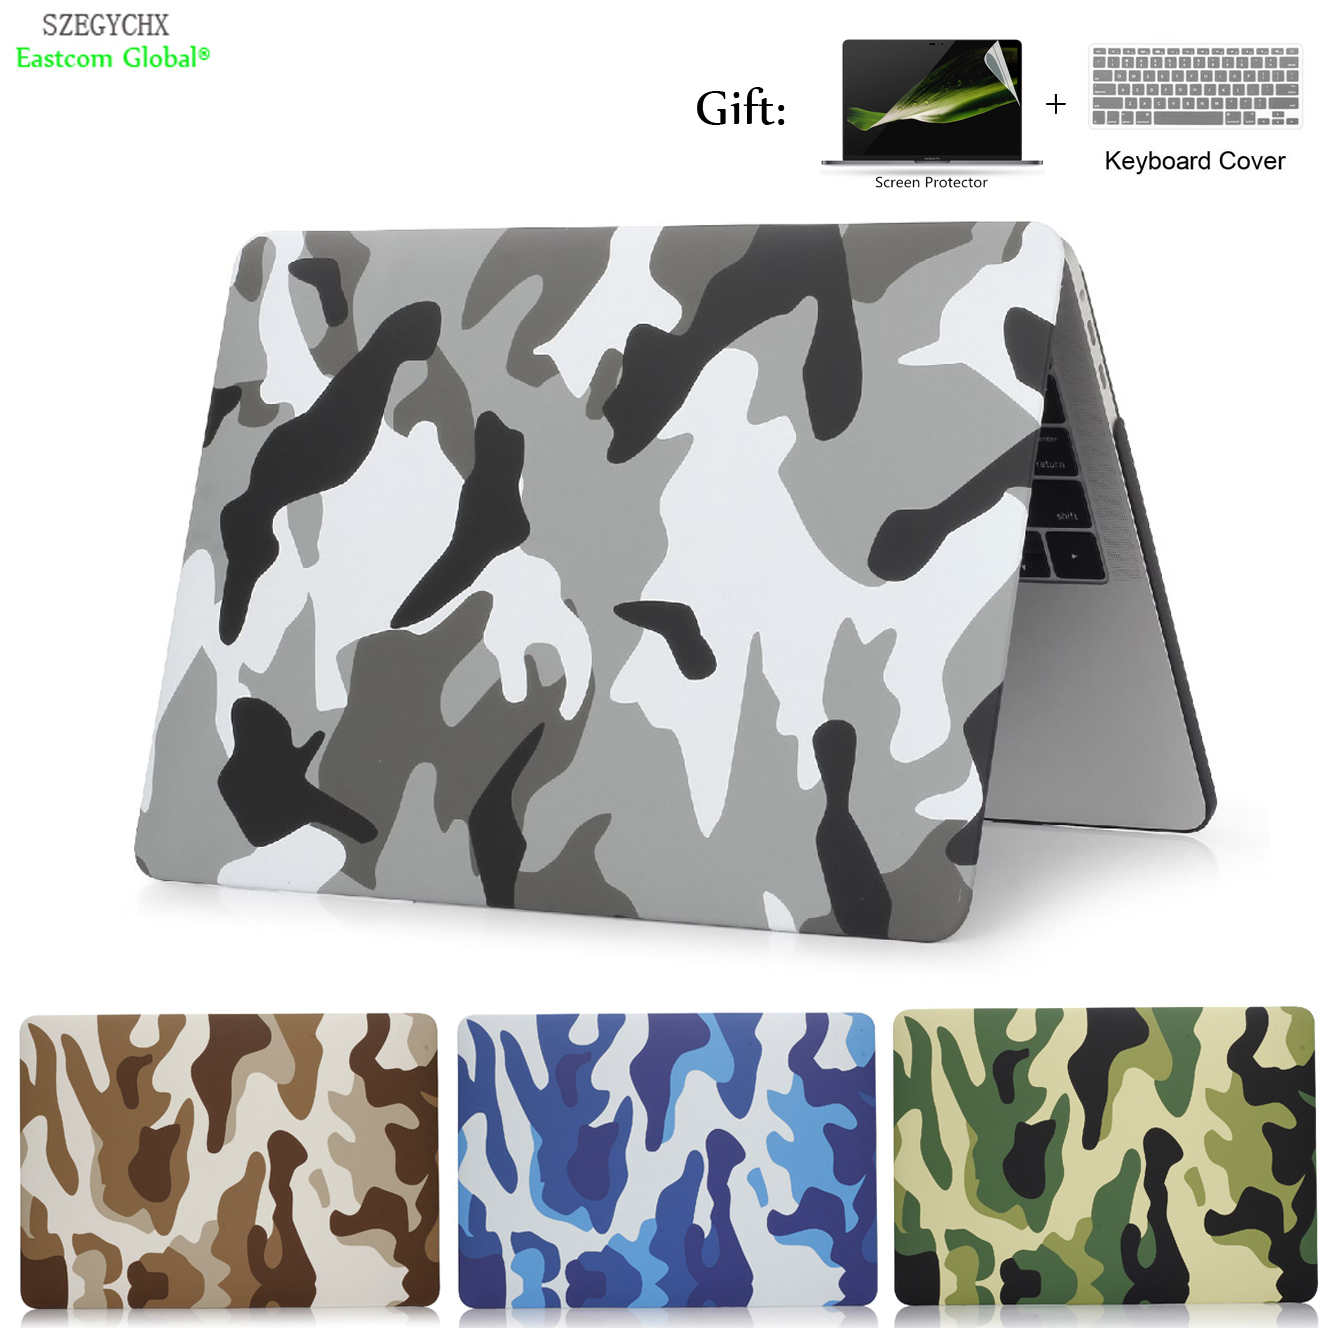 Camouflage apvalks klēpjdatoram MacBook Air 13 11 Pro Retina 12 13,3 15 touch bar Macbook New Air 13 A1932 2018 lieta